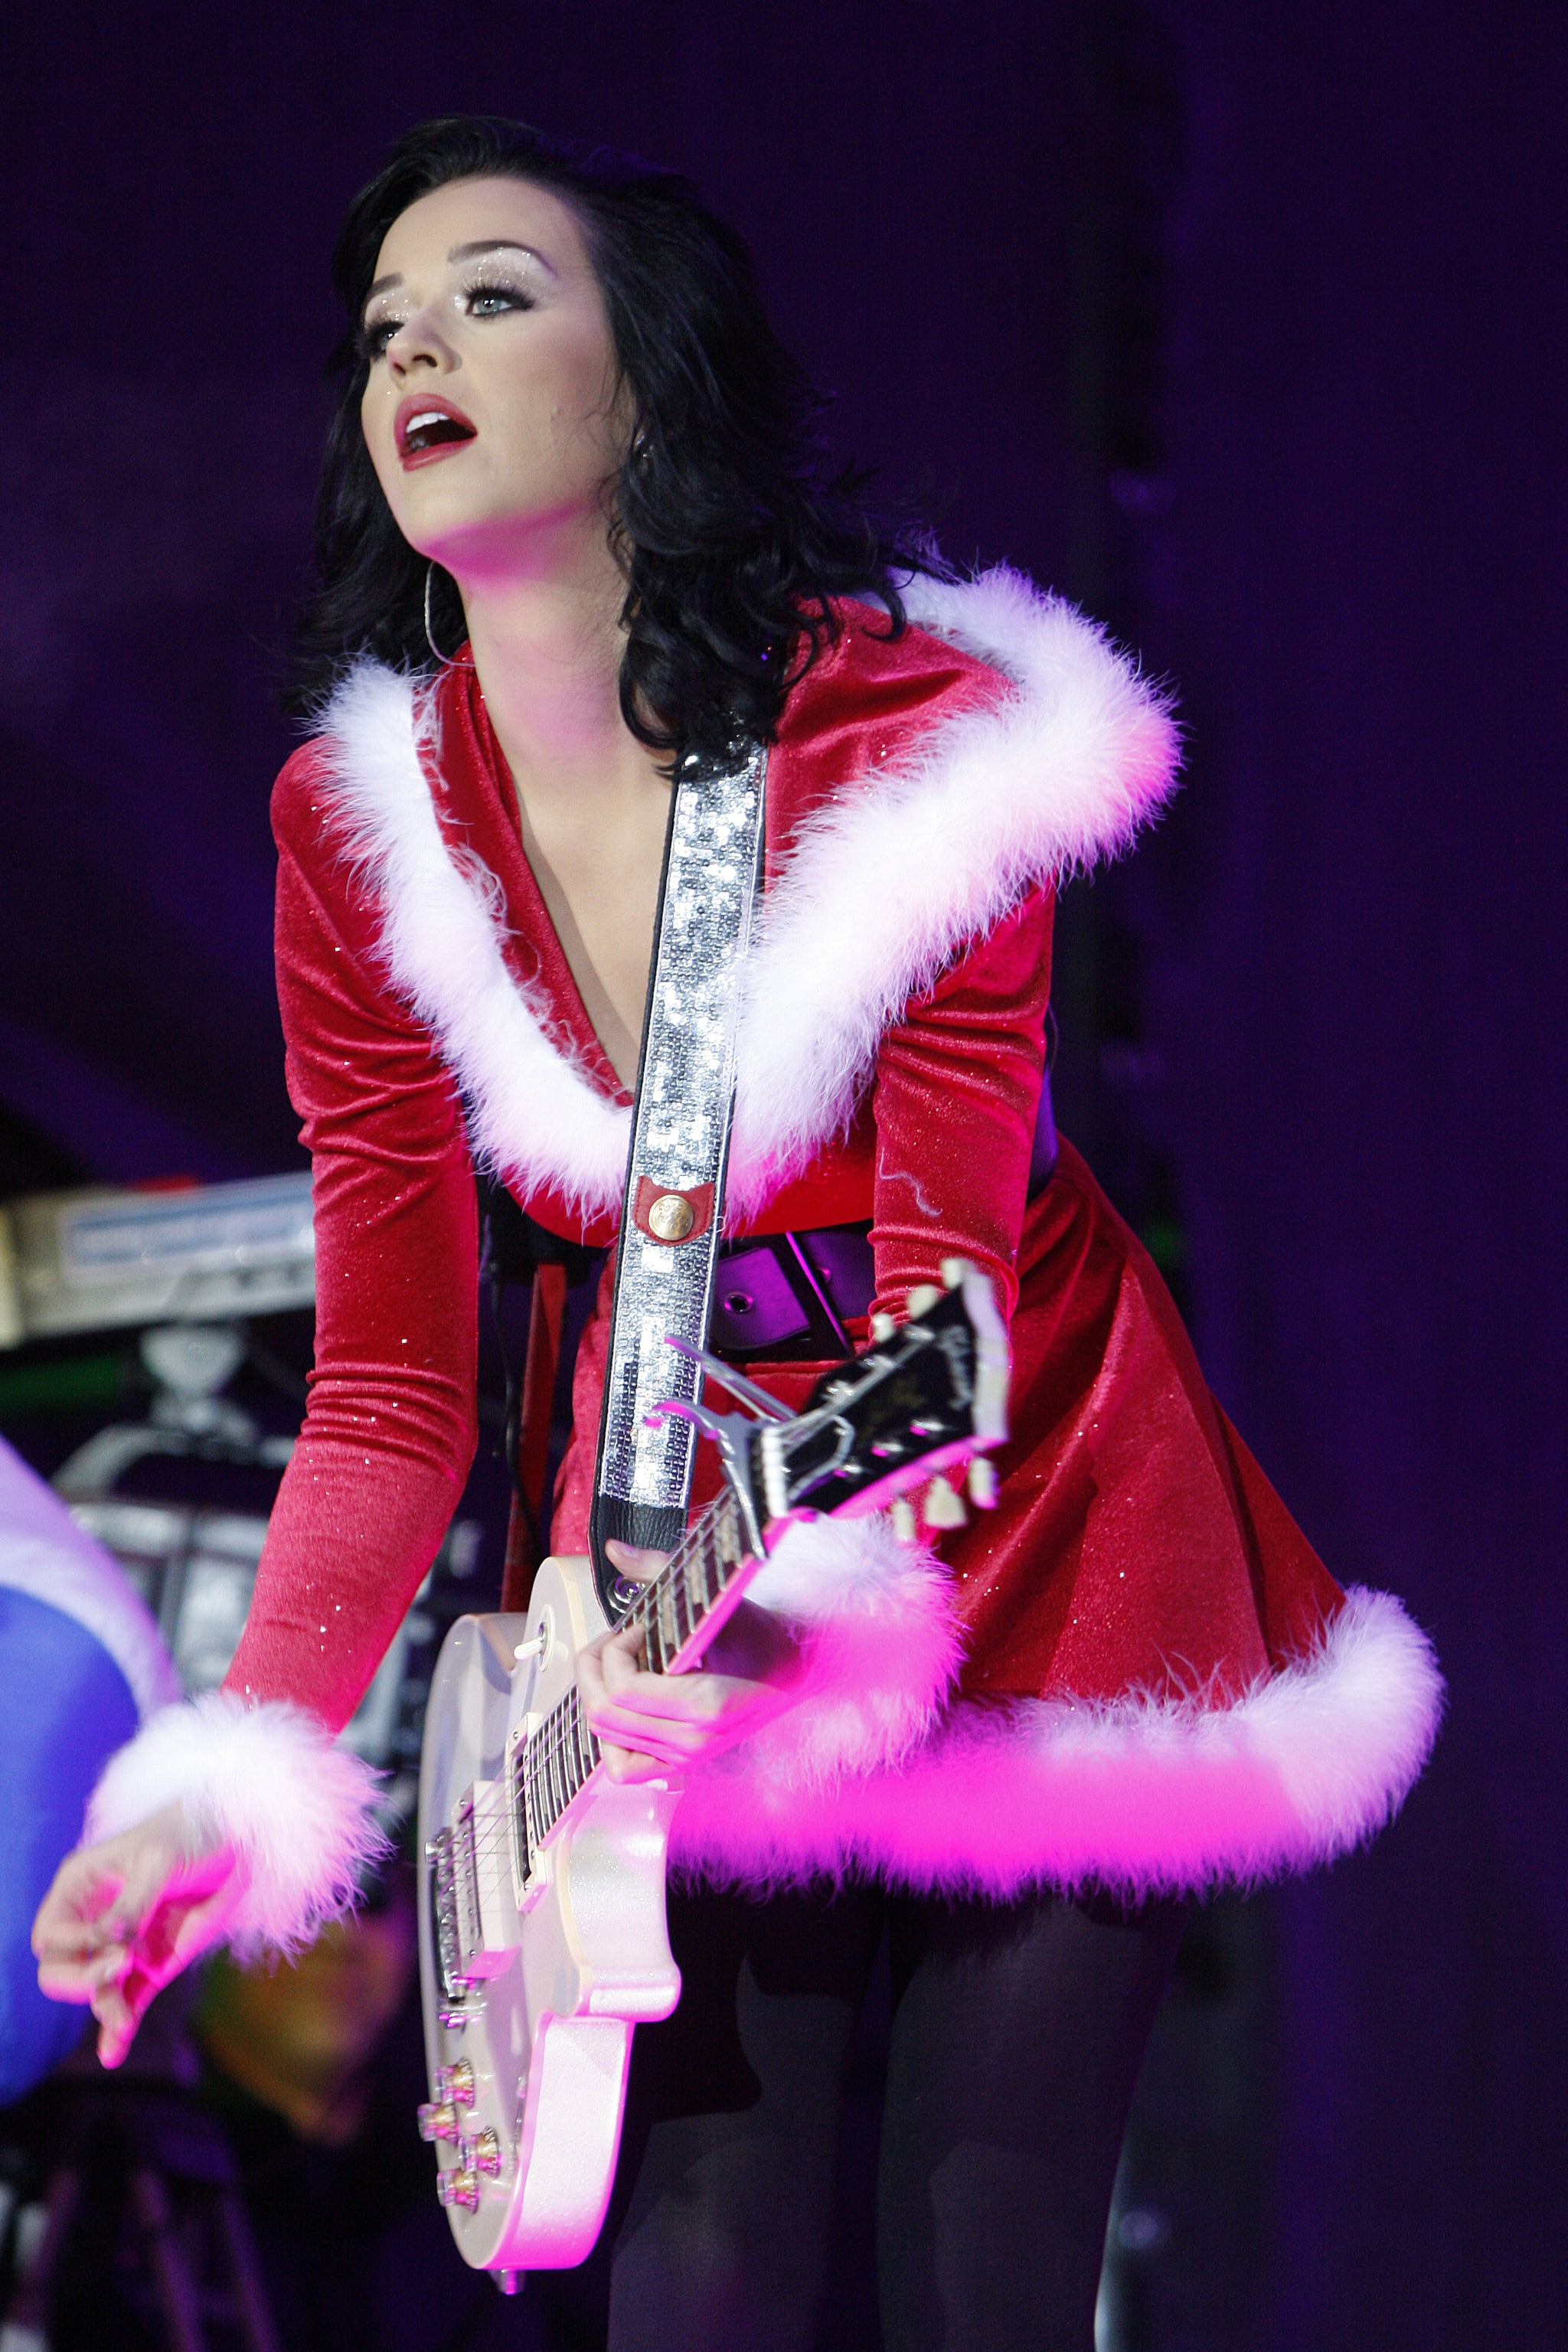 Photos of Katy Perry in Christmas Costume Performing in Austria ...